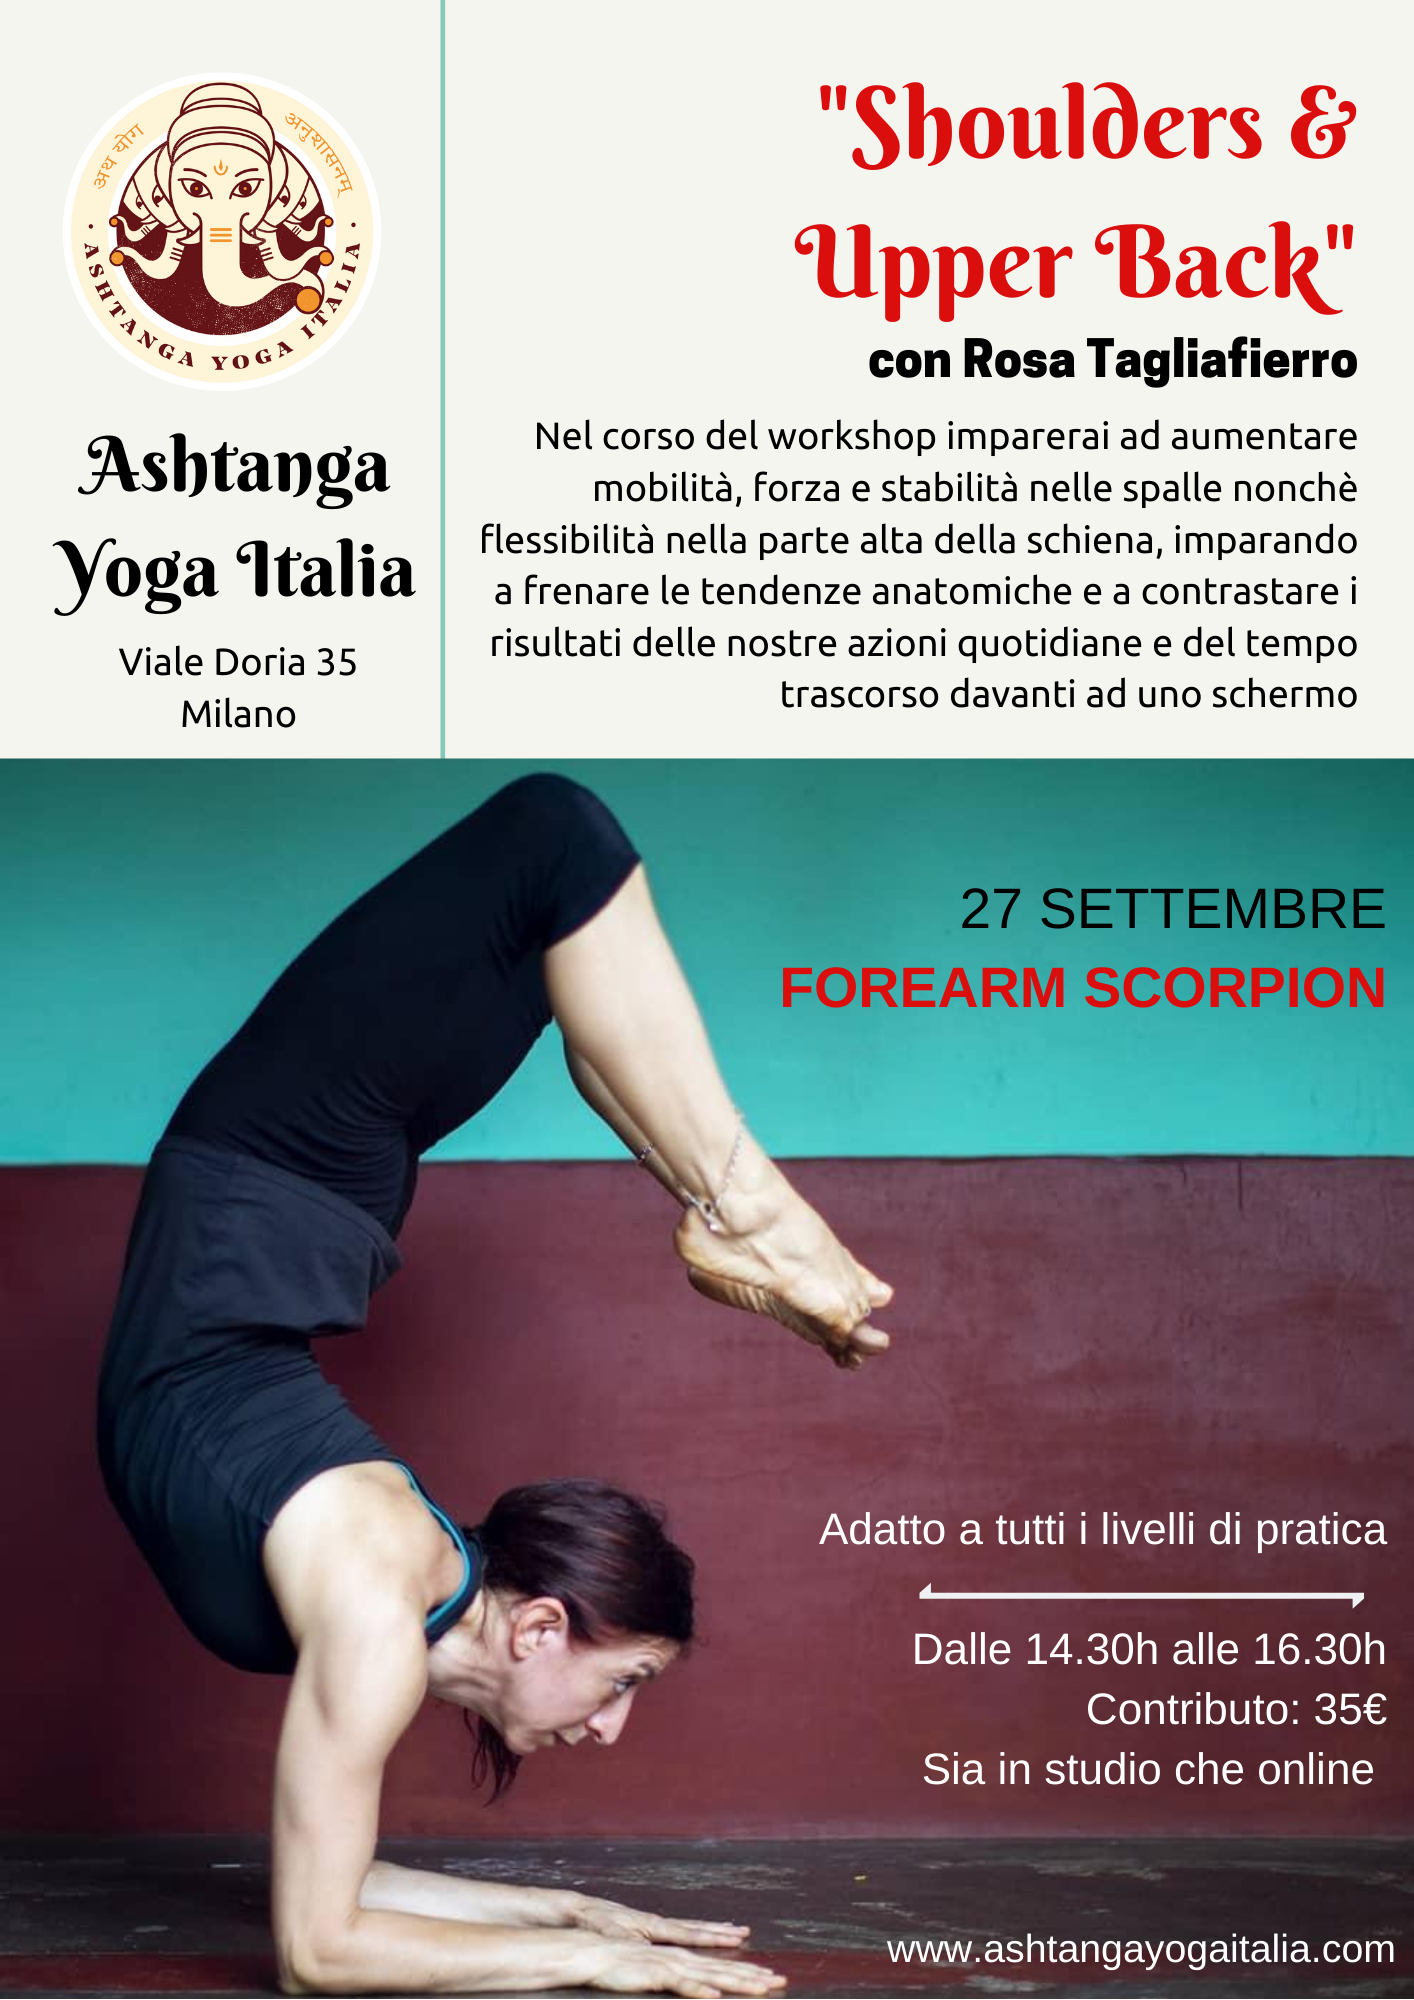 Ashtanga-Yoga-italia-milano-workshop-scorpion